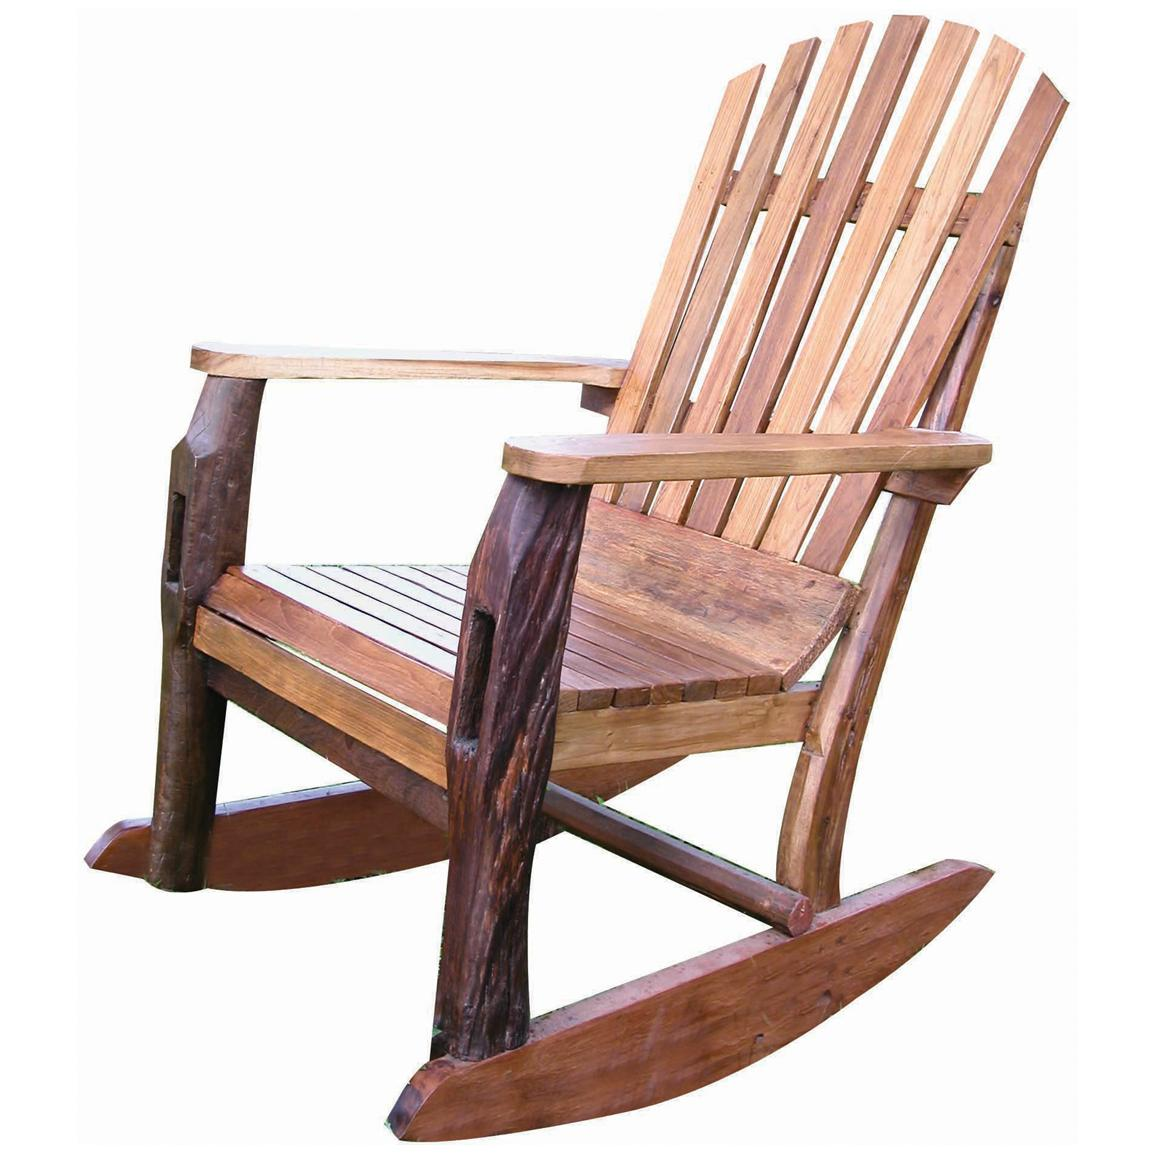 Rocking Chair Plans | bangkokfoodietour.com